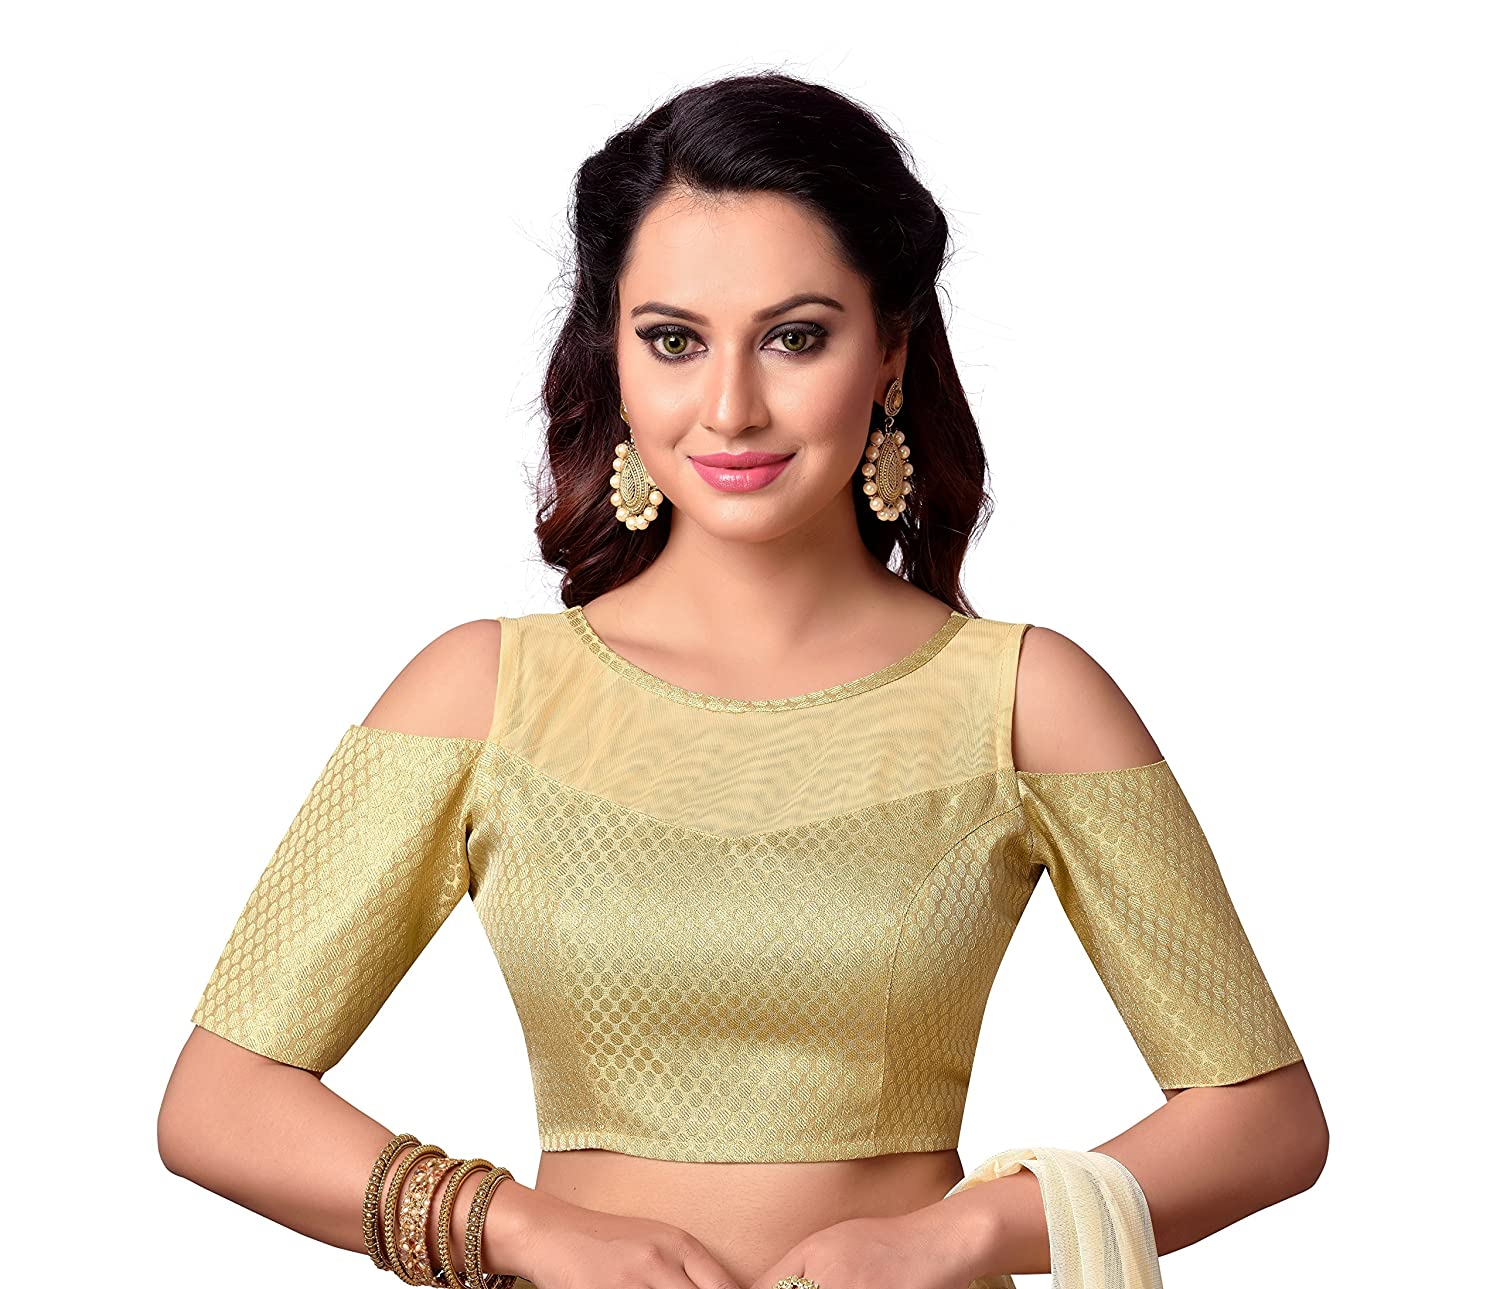 1944e32c612dda STUDIO SHRINGAAR GOLDEN BROCADE COLD SHOULDER READYMADE SAREE BOAT NECK  BLOUSE WITH NET YOKE AND ELBOW LENGTH SLEEVES  Amazon.in  Clothing    Accessories